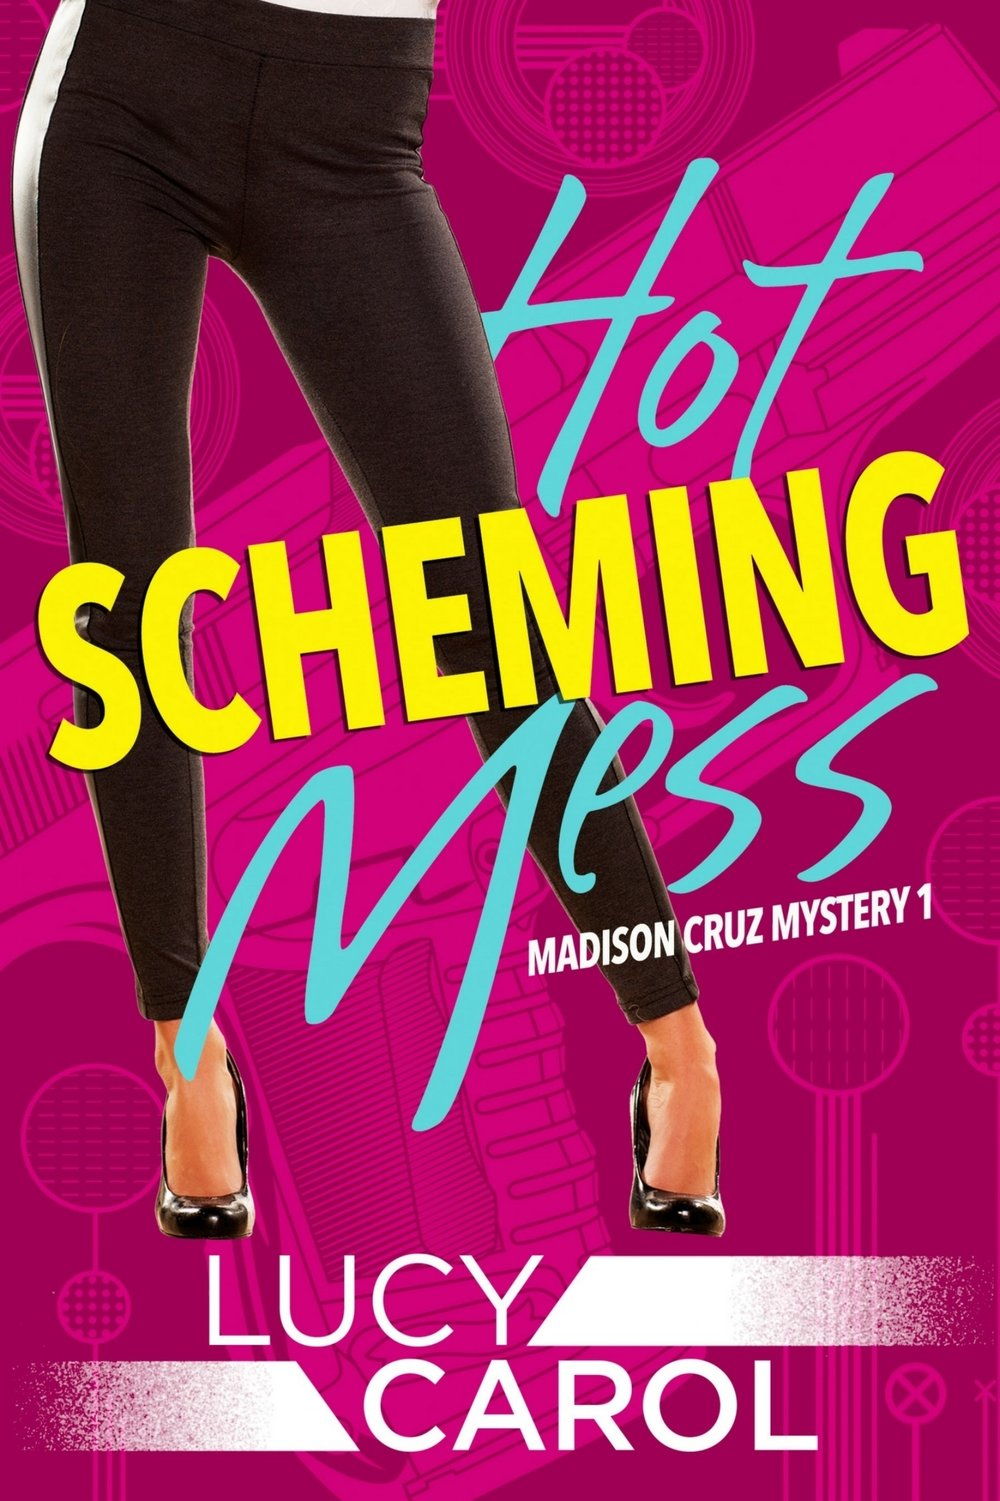 Hot Scheming Mess - Lucy Carol    Secrets, spies, and sexy guys complicate things for Madison Cruz as she tries to help her tough FBI mother without her mother finding out. Current finalist for the Mystery & Mayhem Best Novel Award 2016.